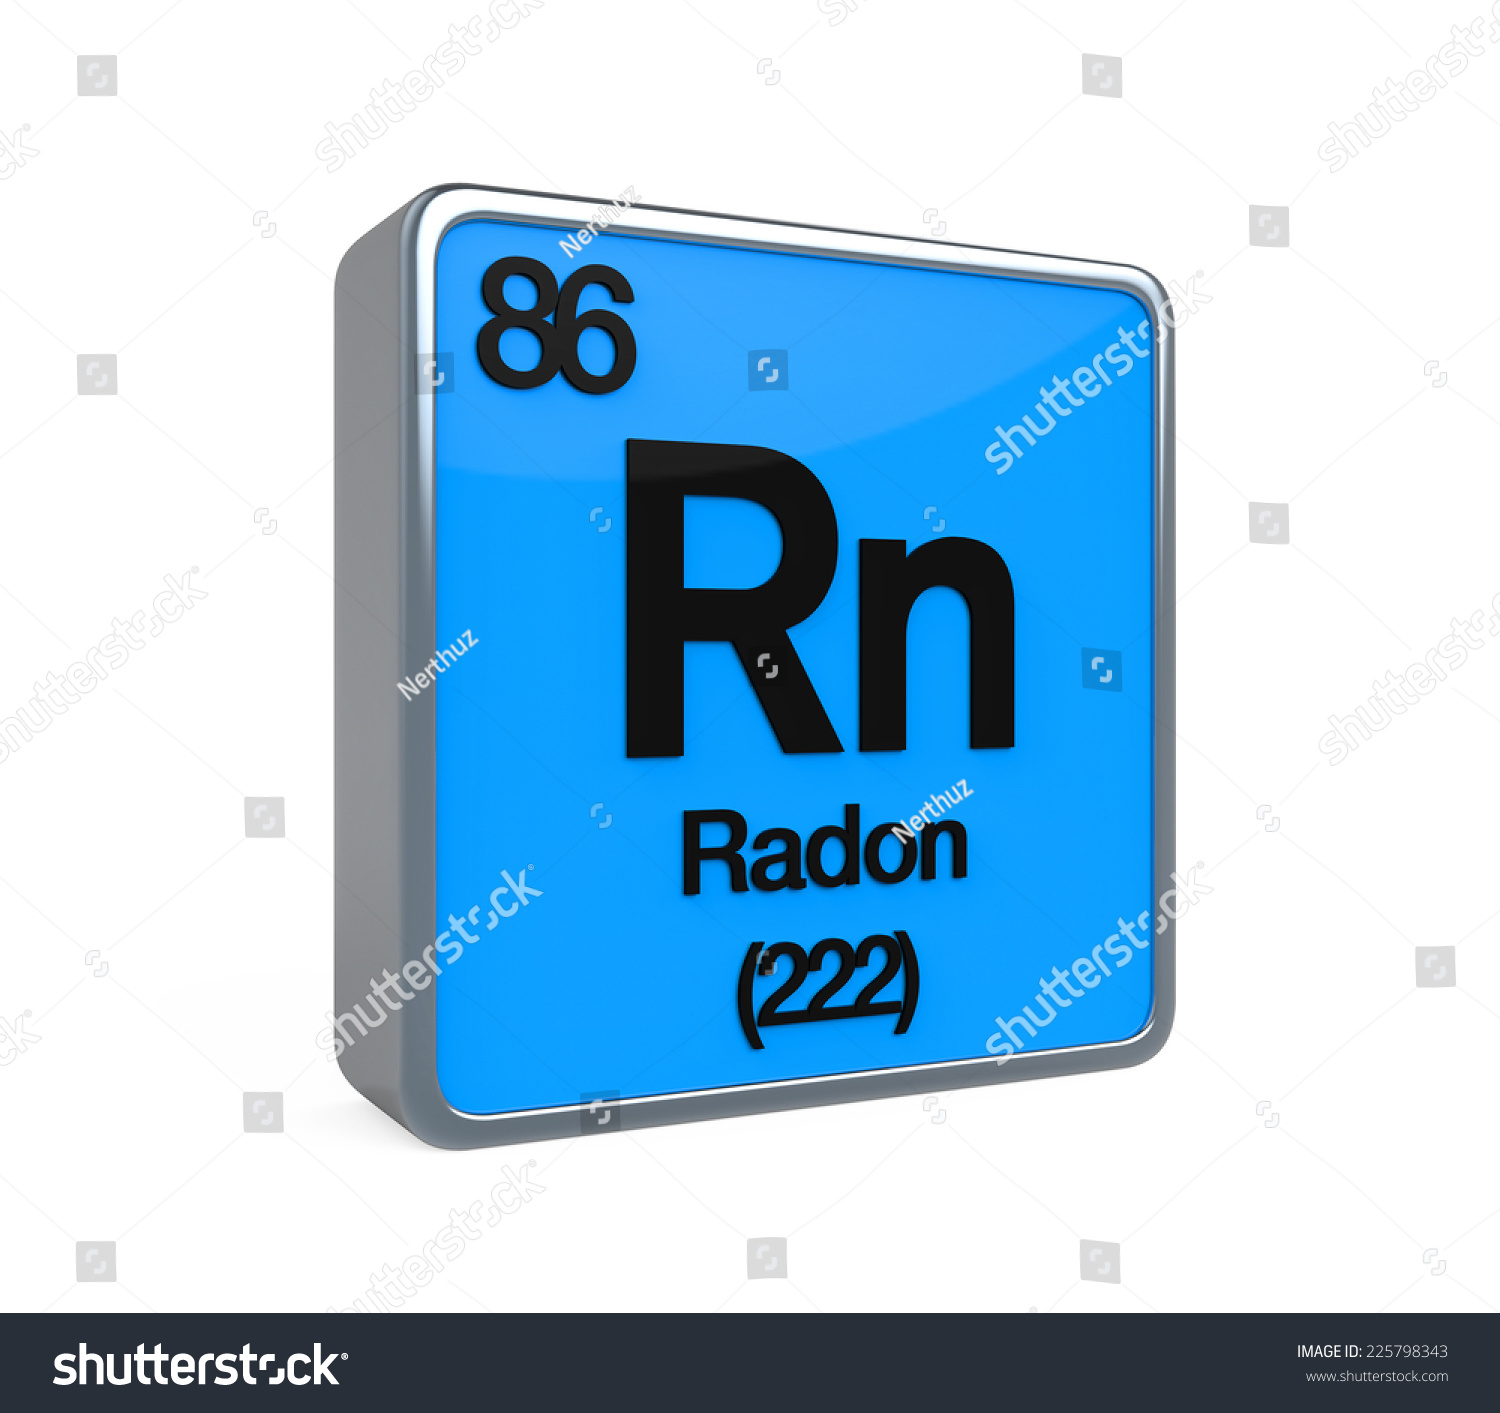 Radon periodic table facts choice image periodic table images rn element periodic table image collections periodic table images radon element periodic table stock illustration 225798343 gamestrikefo Image collections